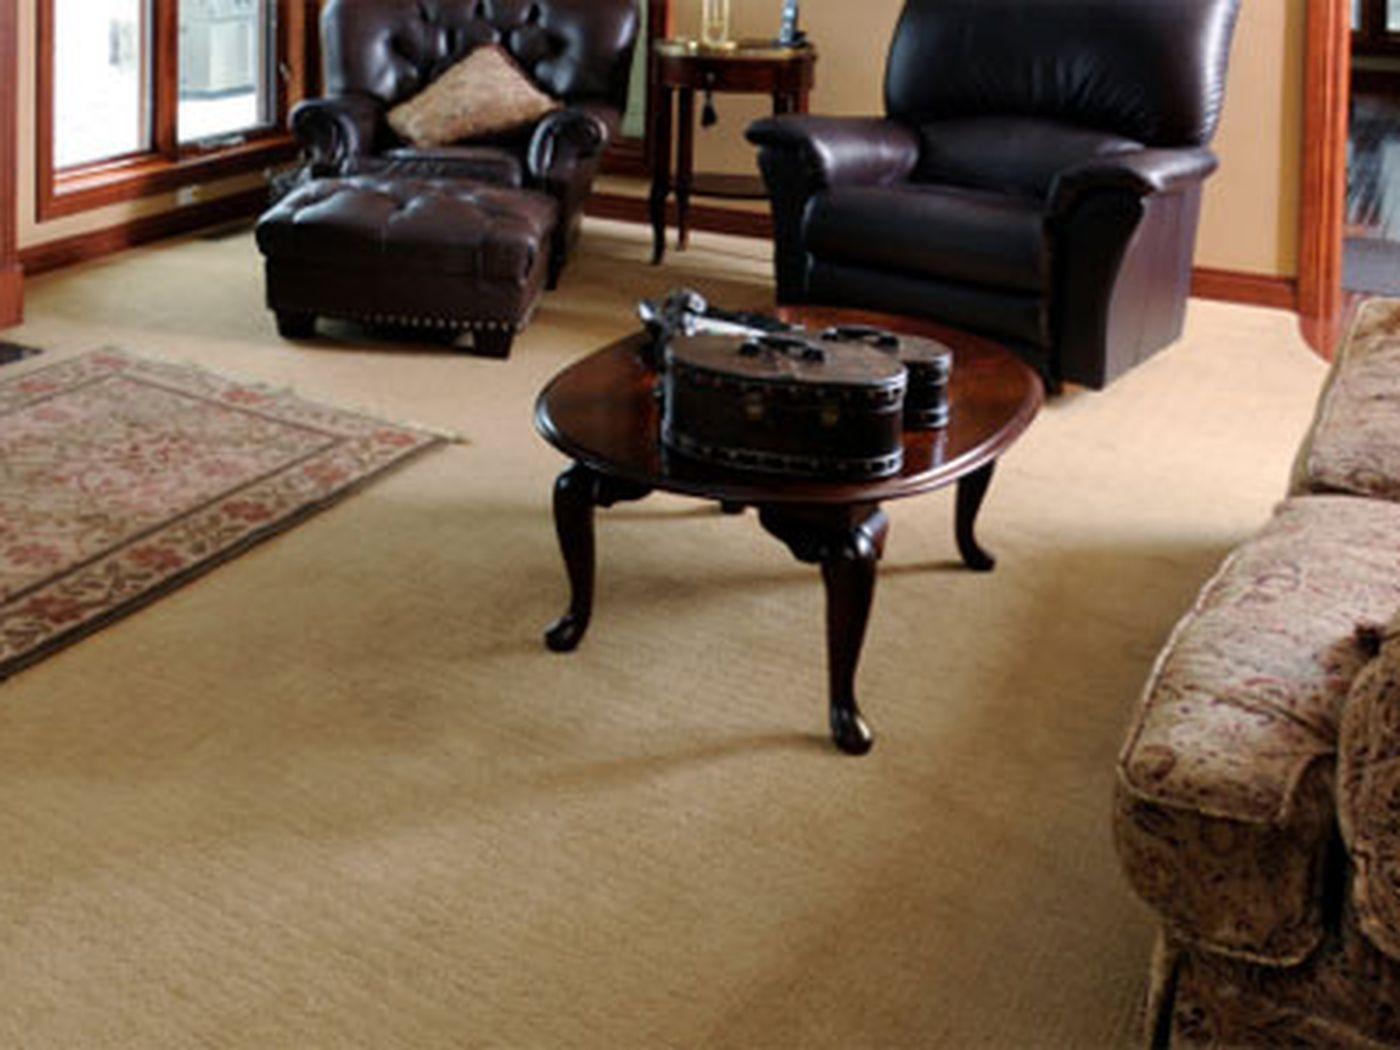 Carpet Installation In 7 Steps This Old House   No Slip Strips For Carpeted Stairs   Hardwood   Traction   Brown Cinnamon   Tread Nosing   Flooring